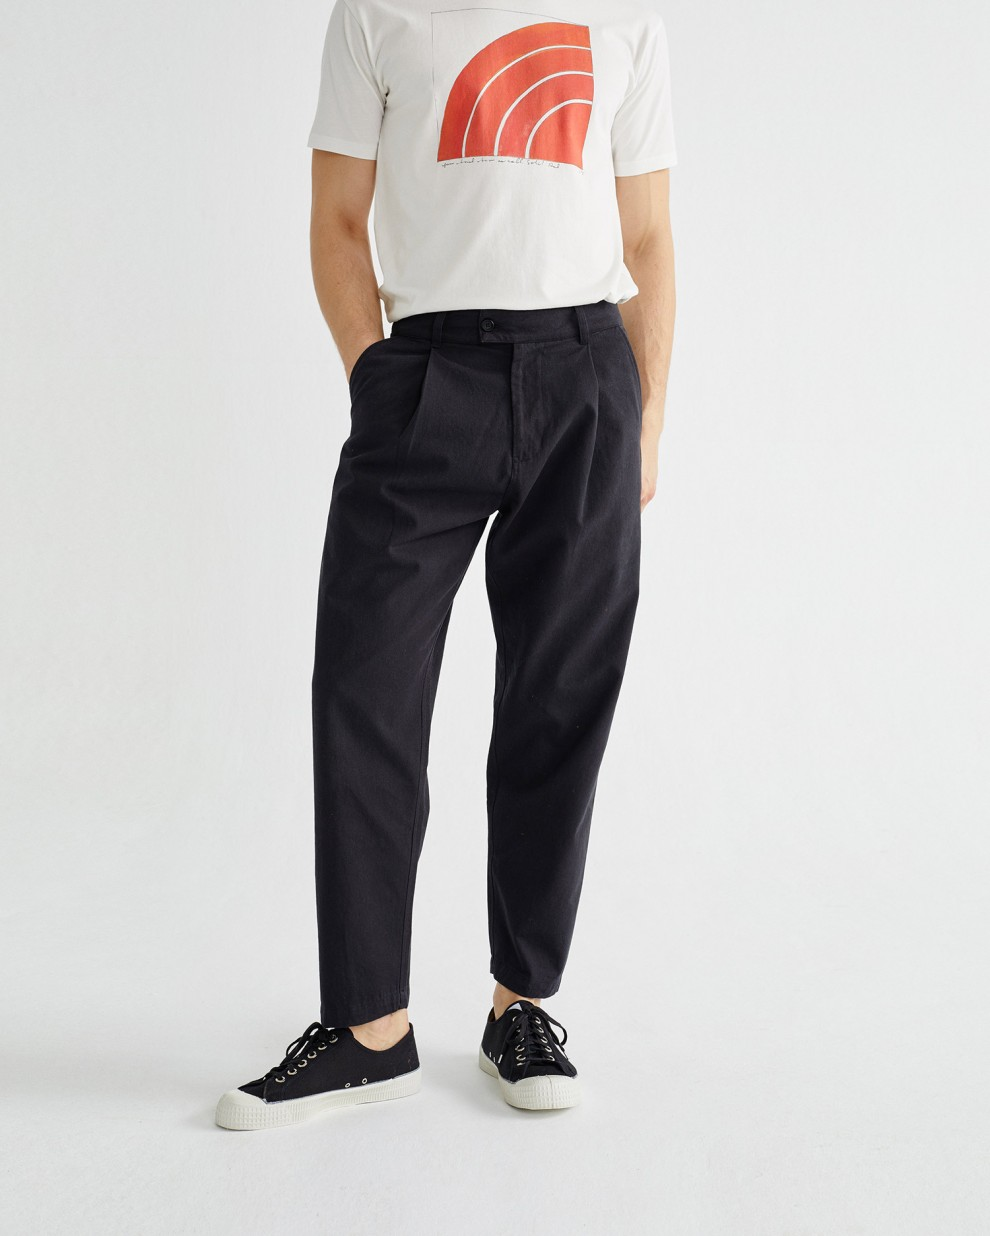 BLACK WOTAN PANTS